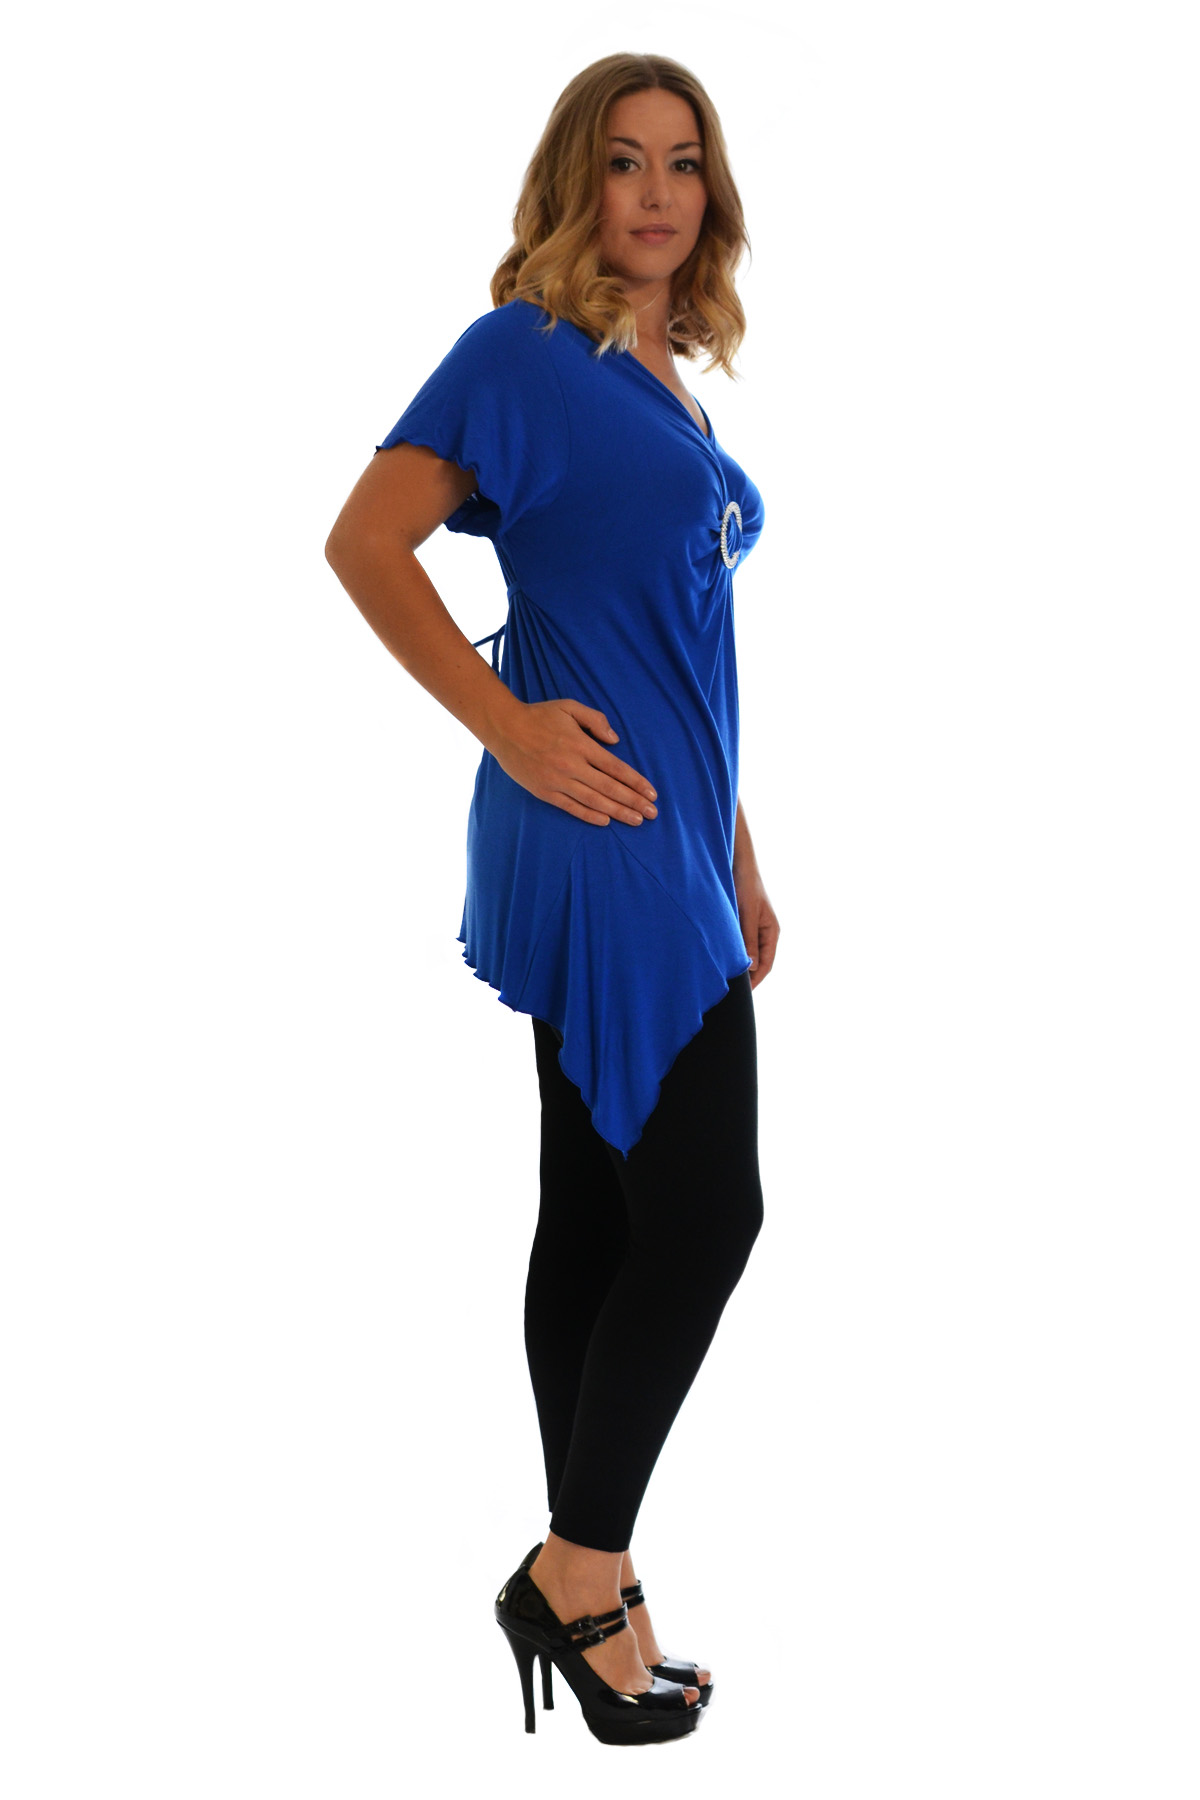 New-Womens-Plus-Size-Top-Ladies-T-Shirt-Buckle-Stud-A-Line-Asymmetric-Nouvelle thumbnail 24